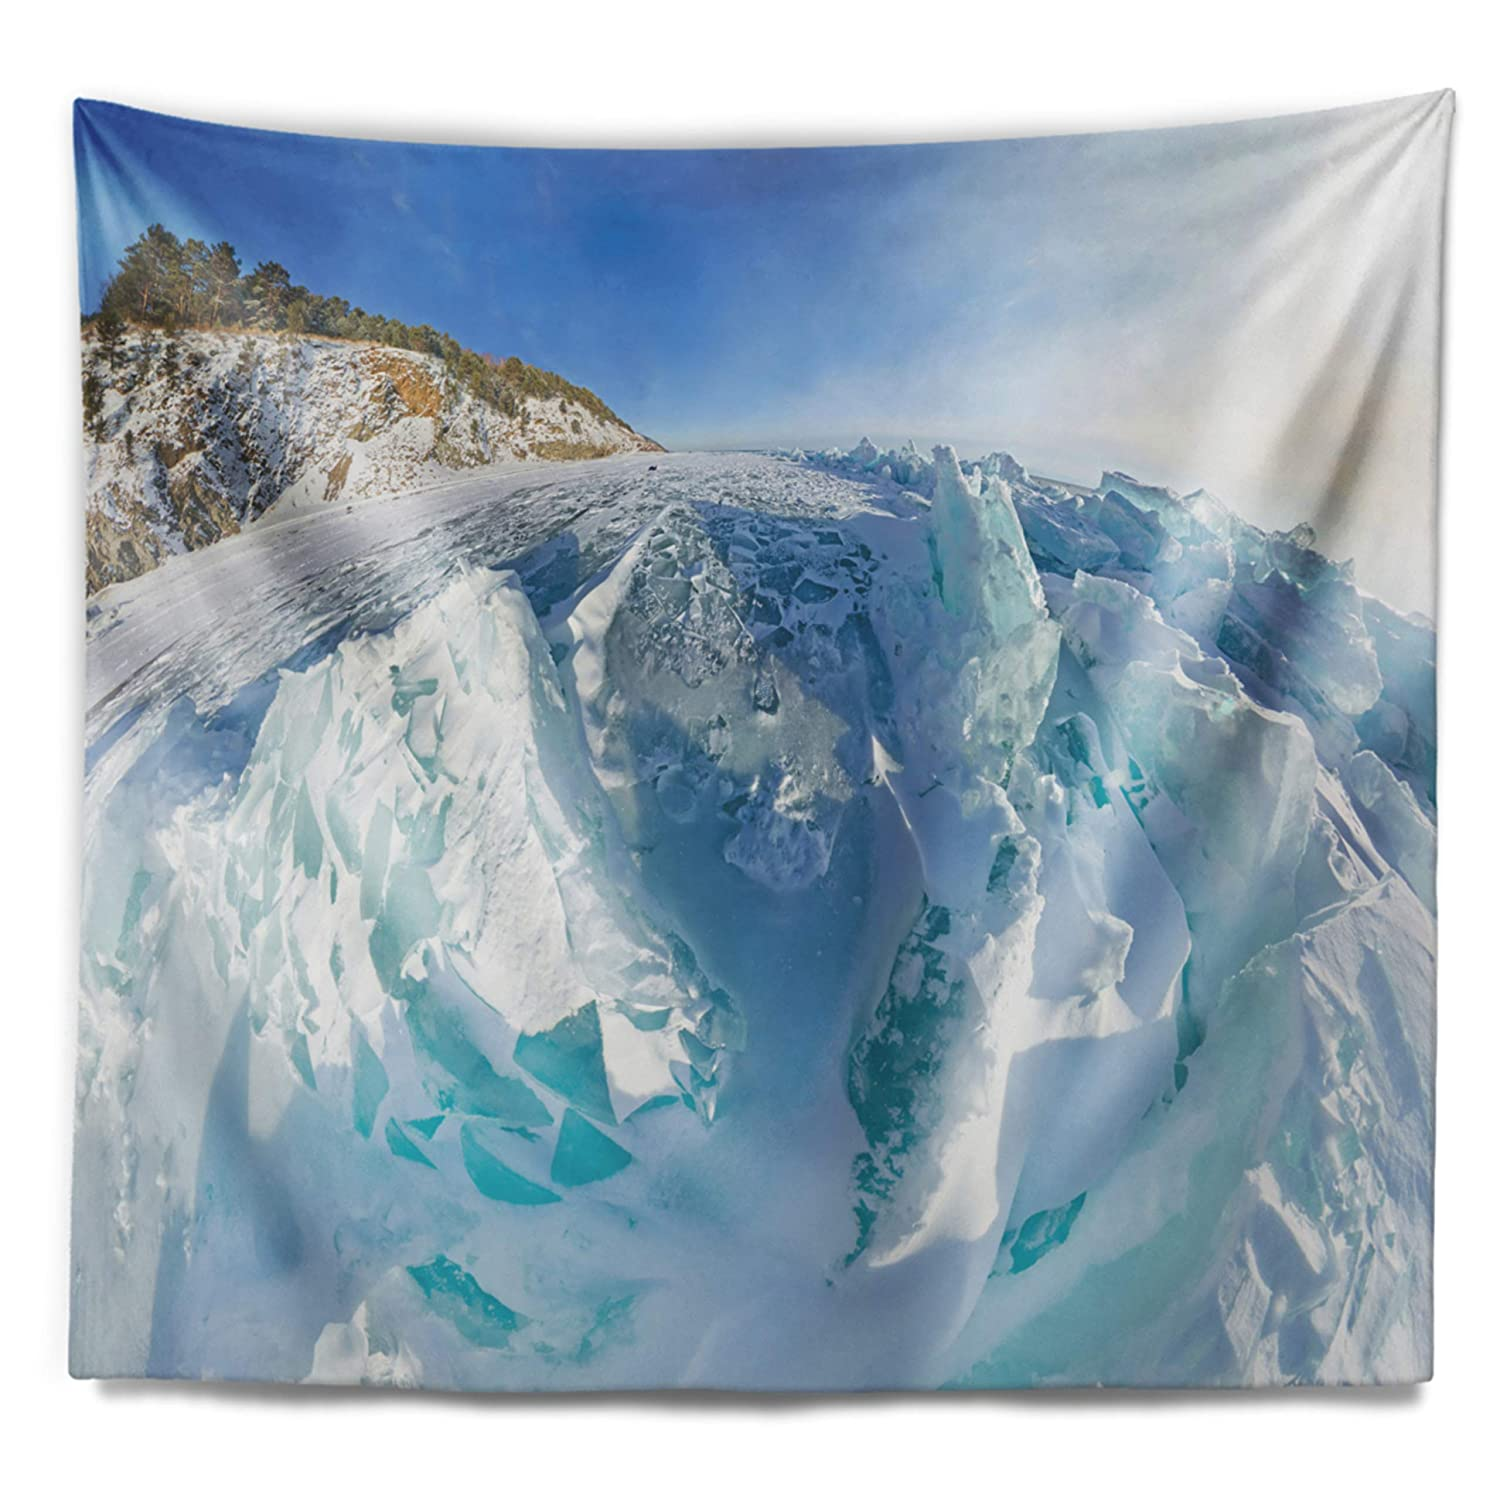 x 68 in Designart TAP11738-80-68 Blue Ice Mountains in Lake Baikal Siberia Landscape Blanket D/écor Art for Home and Office Wall Tapestry 80 in x Large